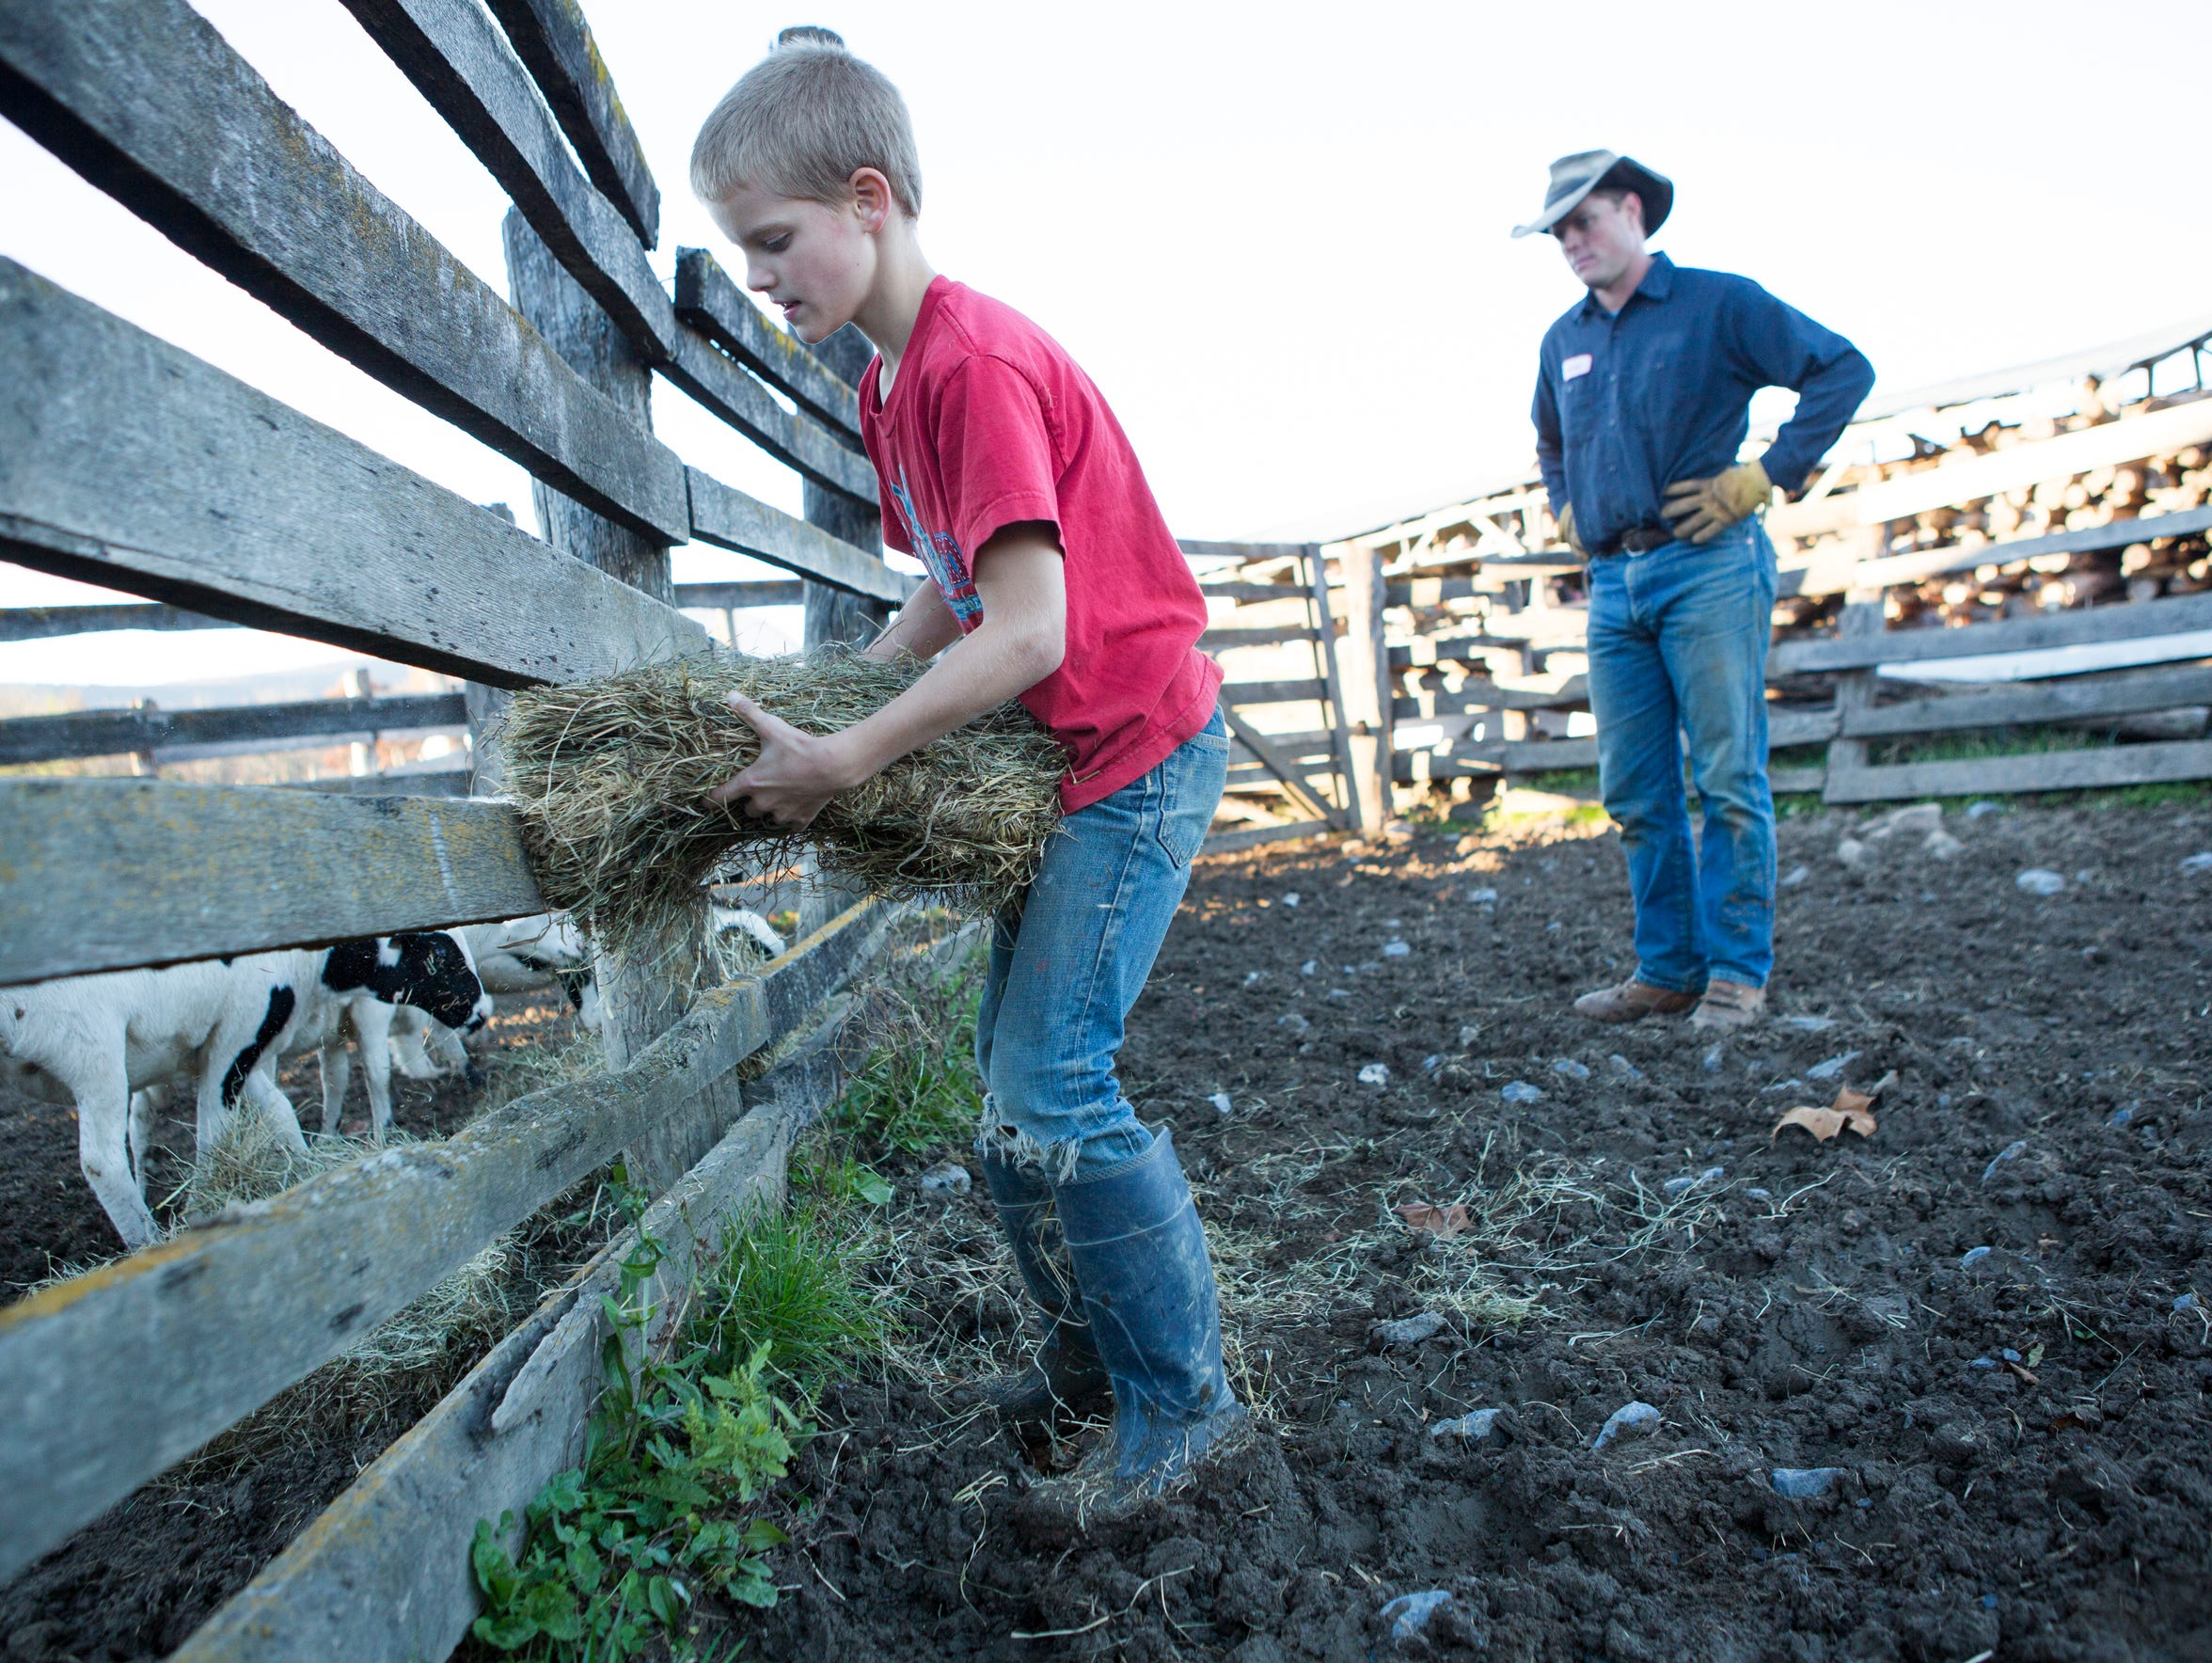 Andrew Salatin, 10, feeds sheep in their pen with his